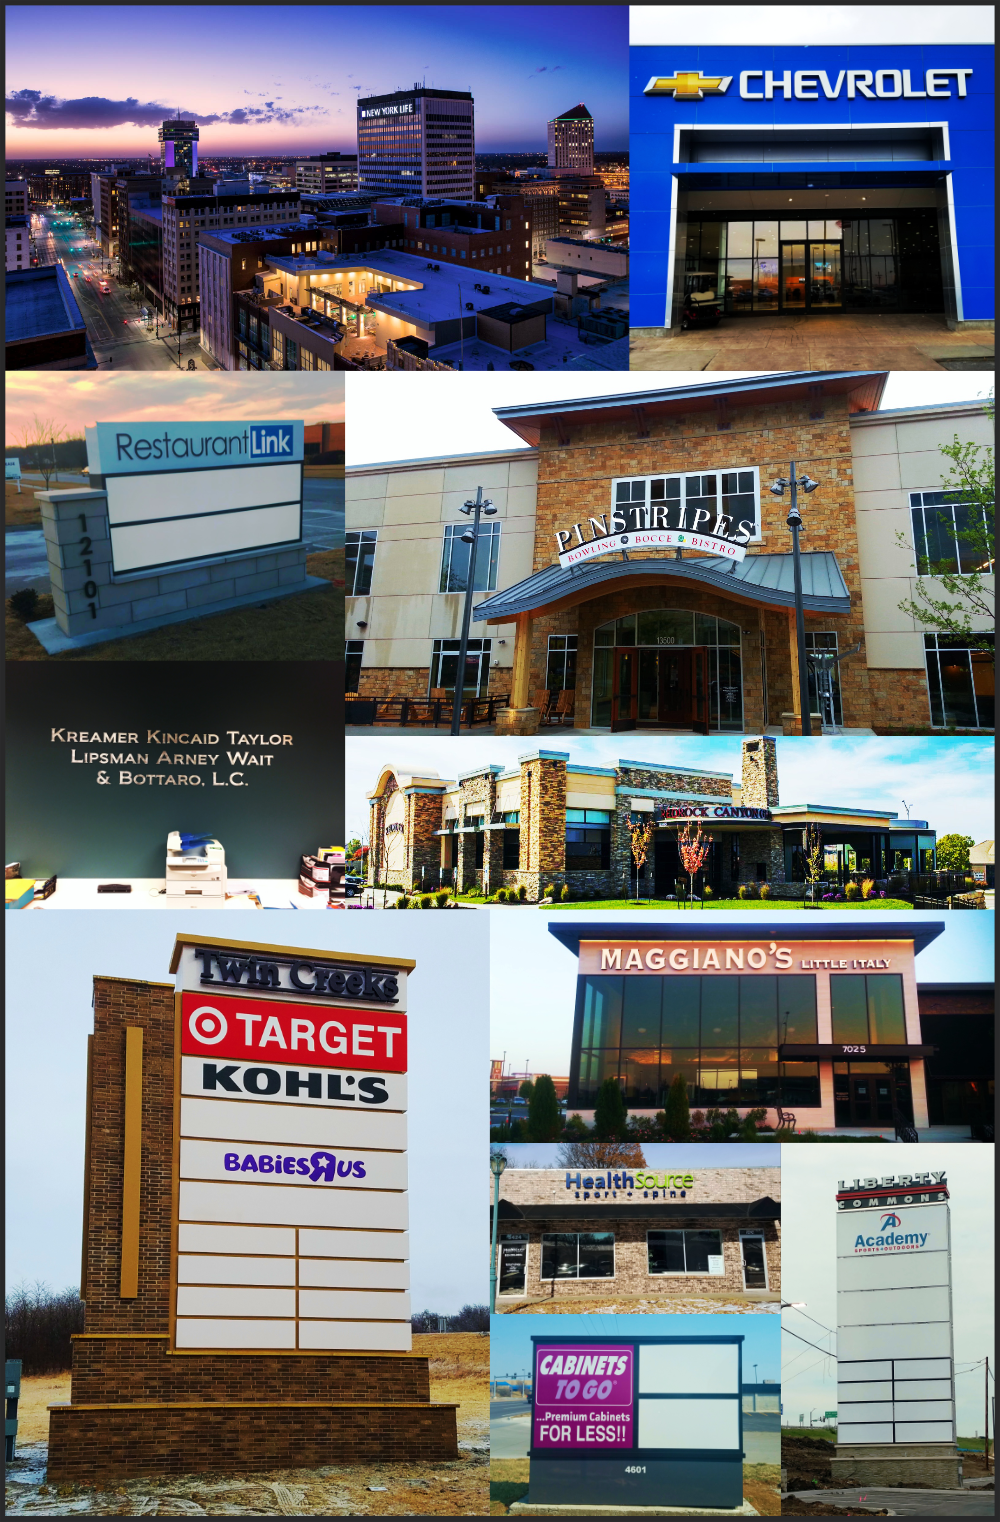 Collage of different signs, Home page, exterior signs, monument signs, exterior building signs